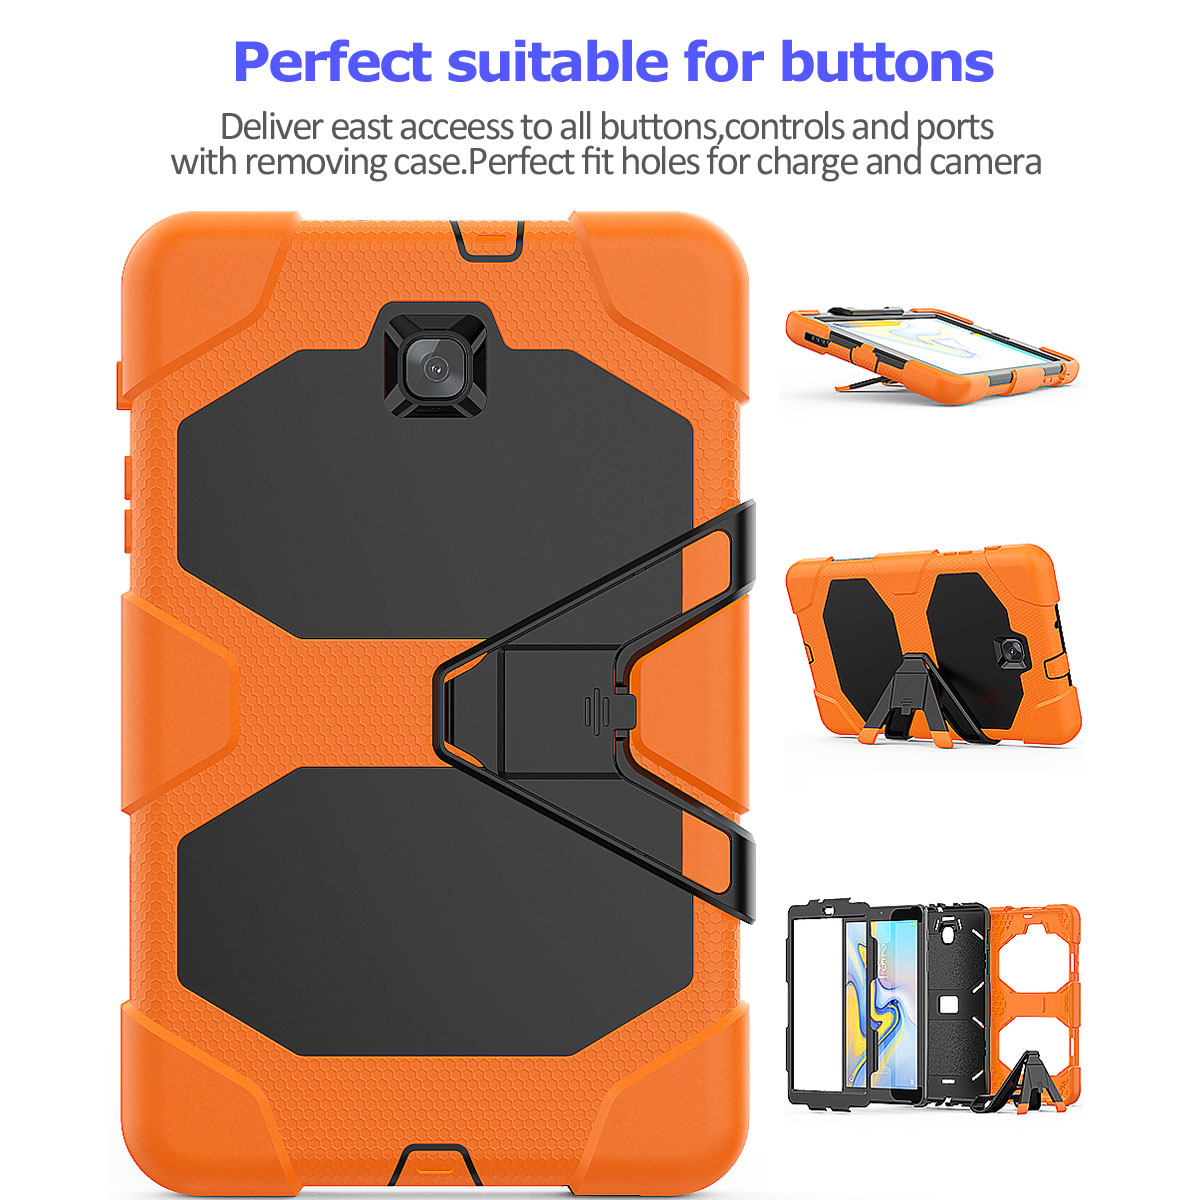 Rugged-Hard-Case-For-Samsung-Galaxy-Tab-A-8-0-2018-SM-T387-with-Screen-Protector thumbnail 46